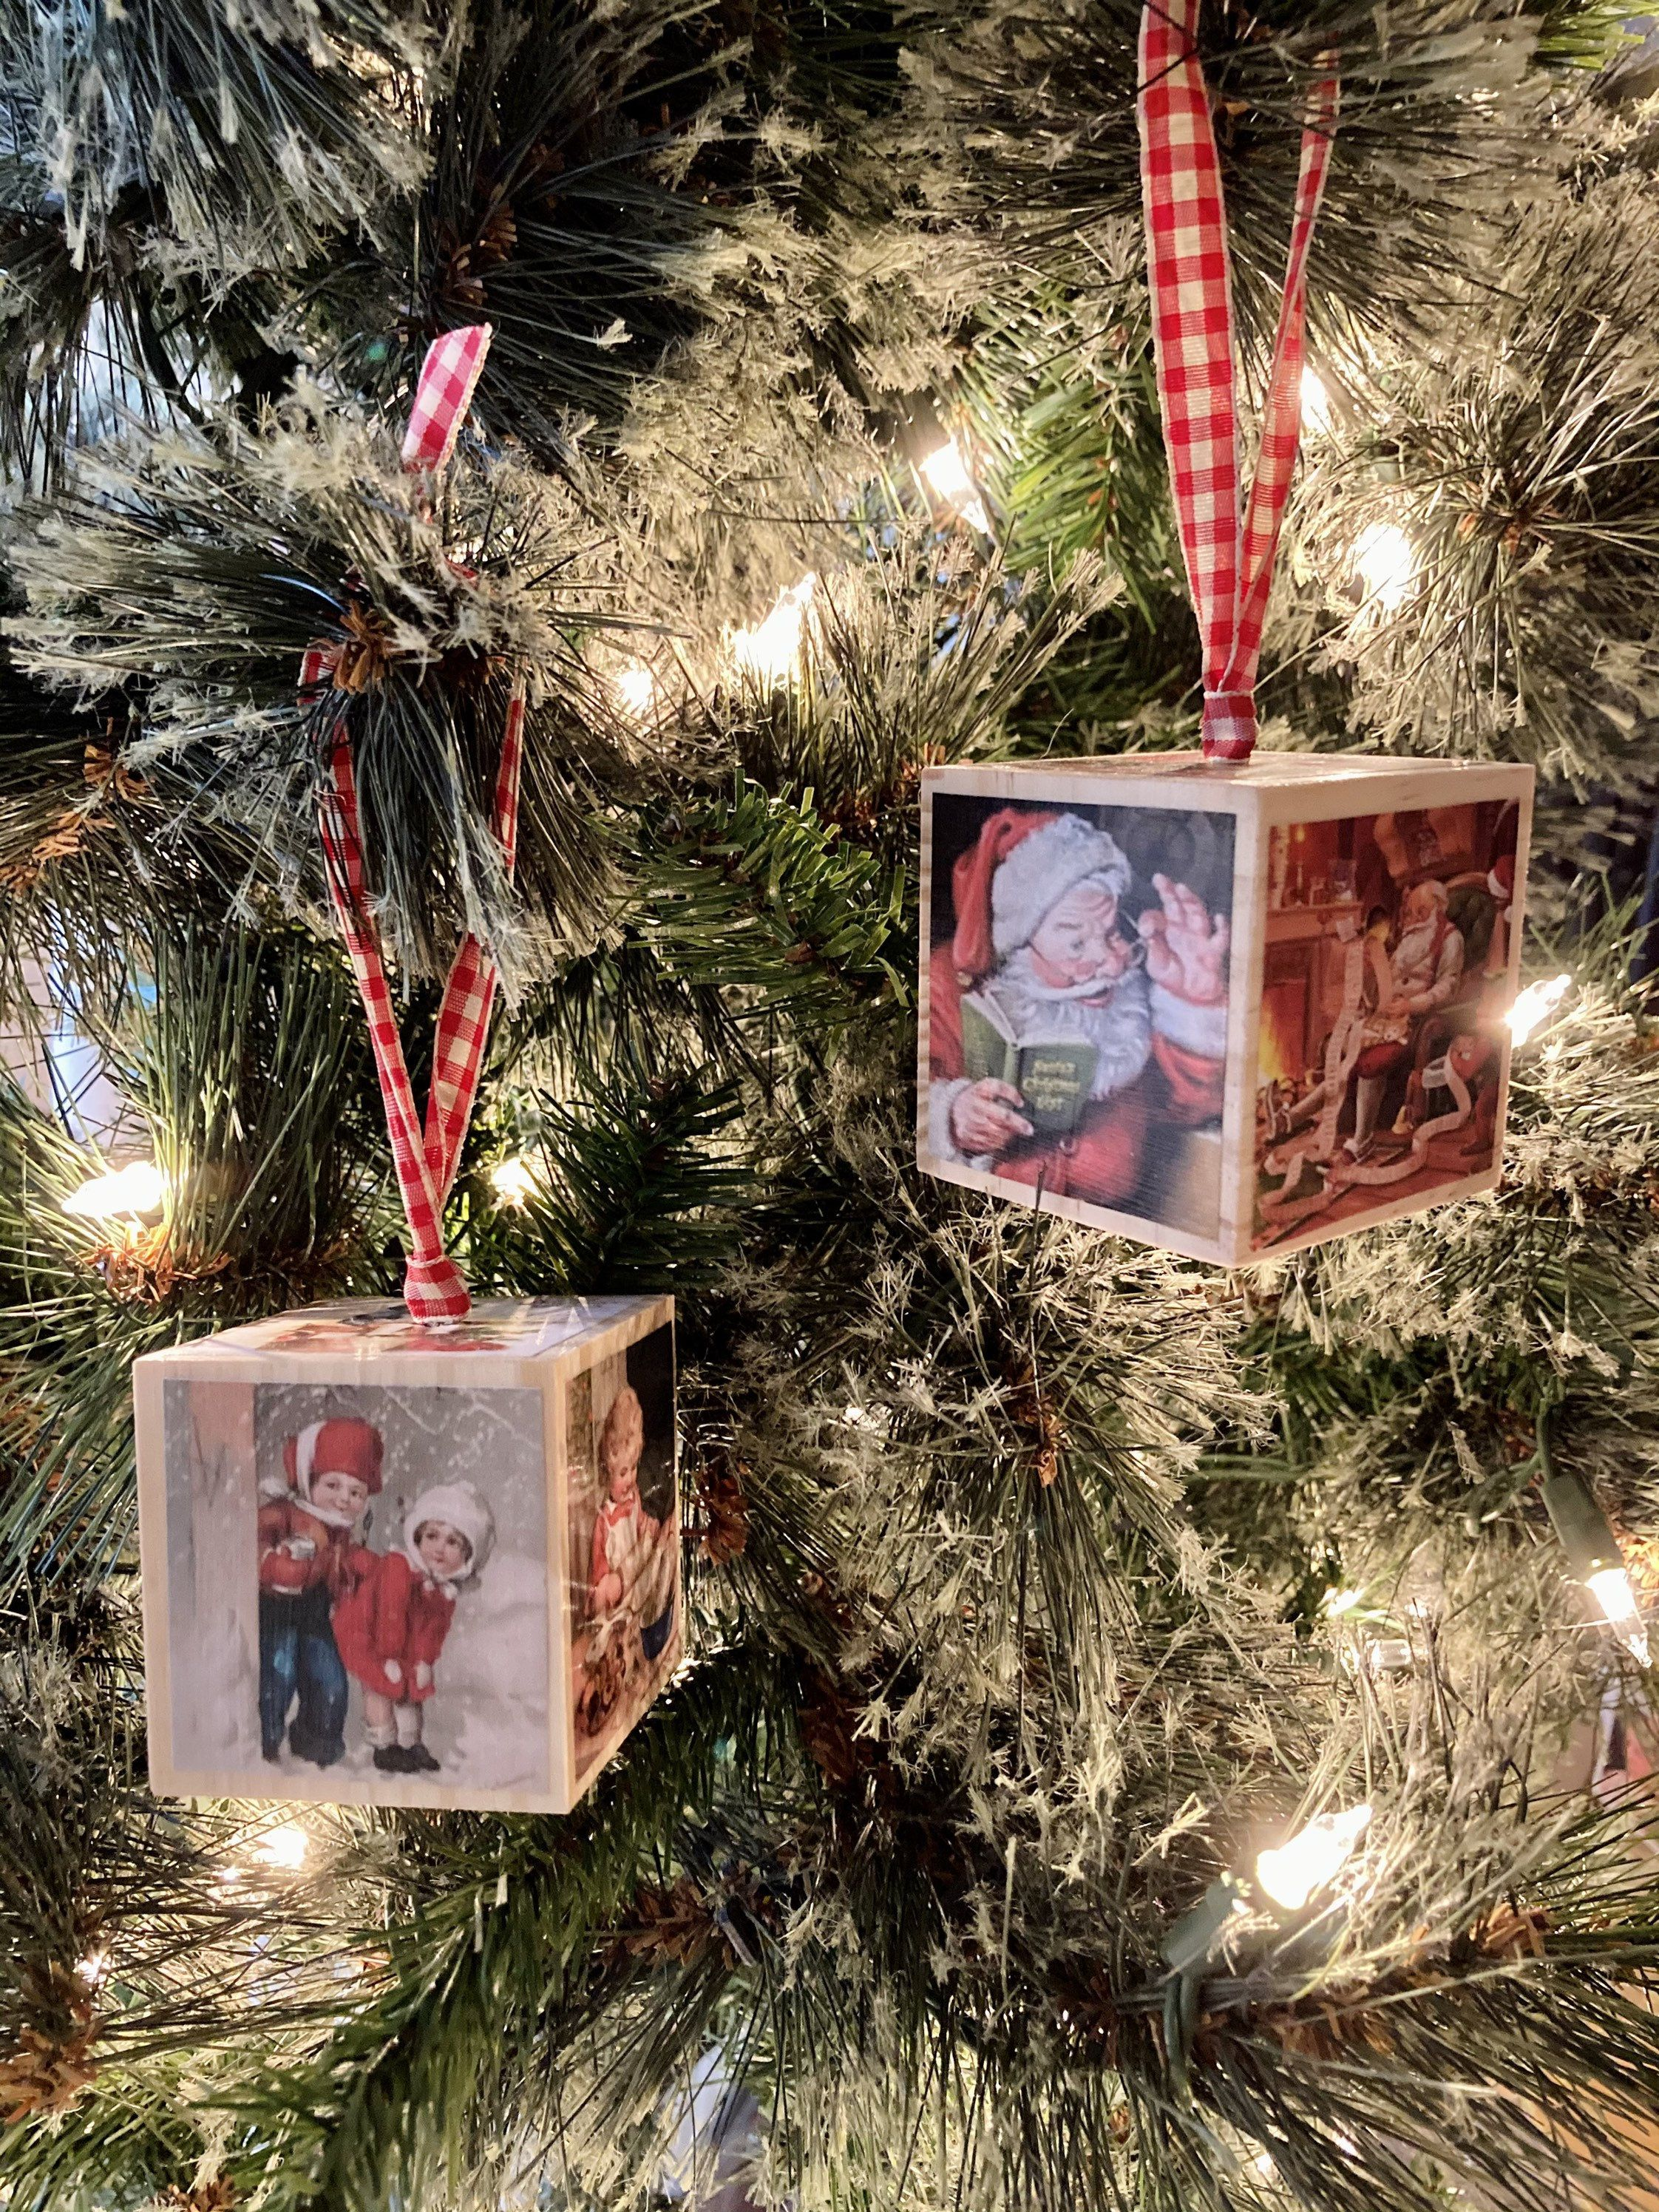 Pin By Taryn Paquet On Gifts Photo Blocks Ornament Wooden Christmas Ornaments Blocks Ornaments